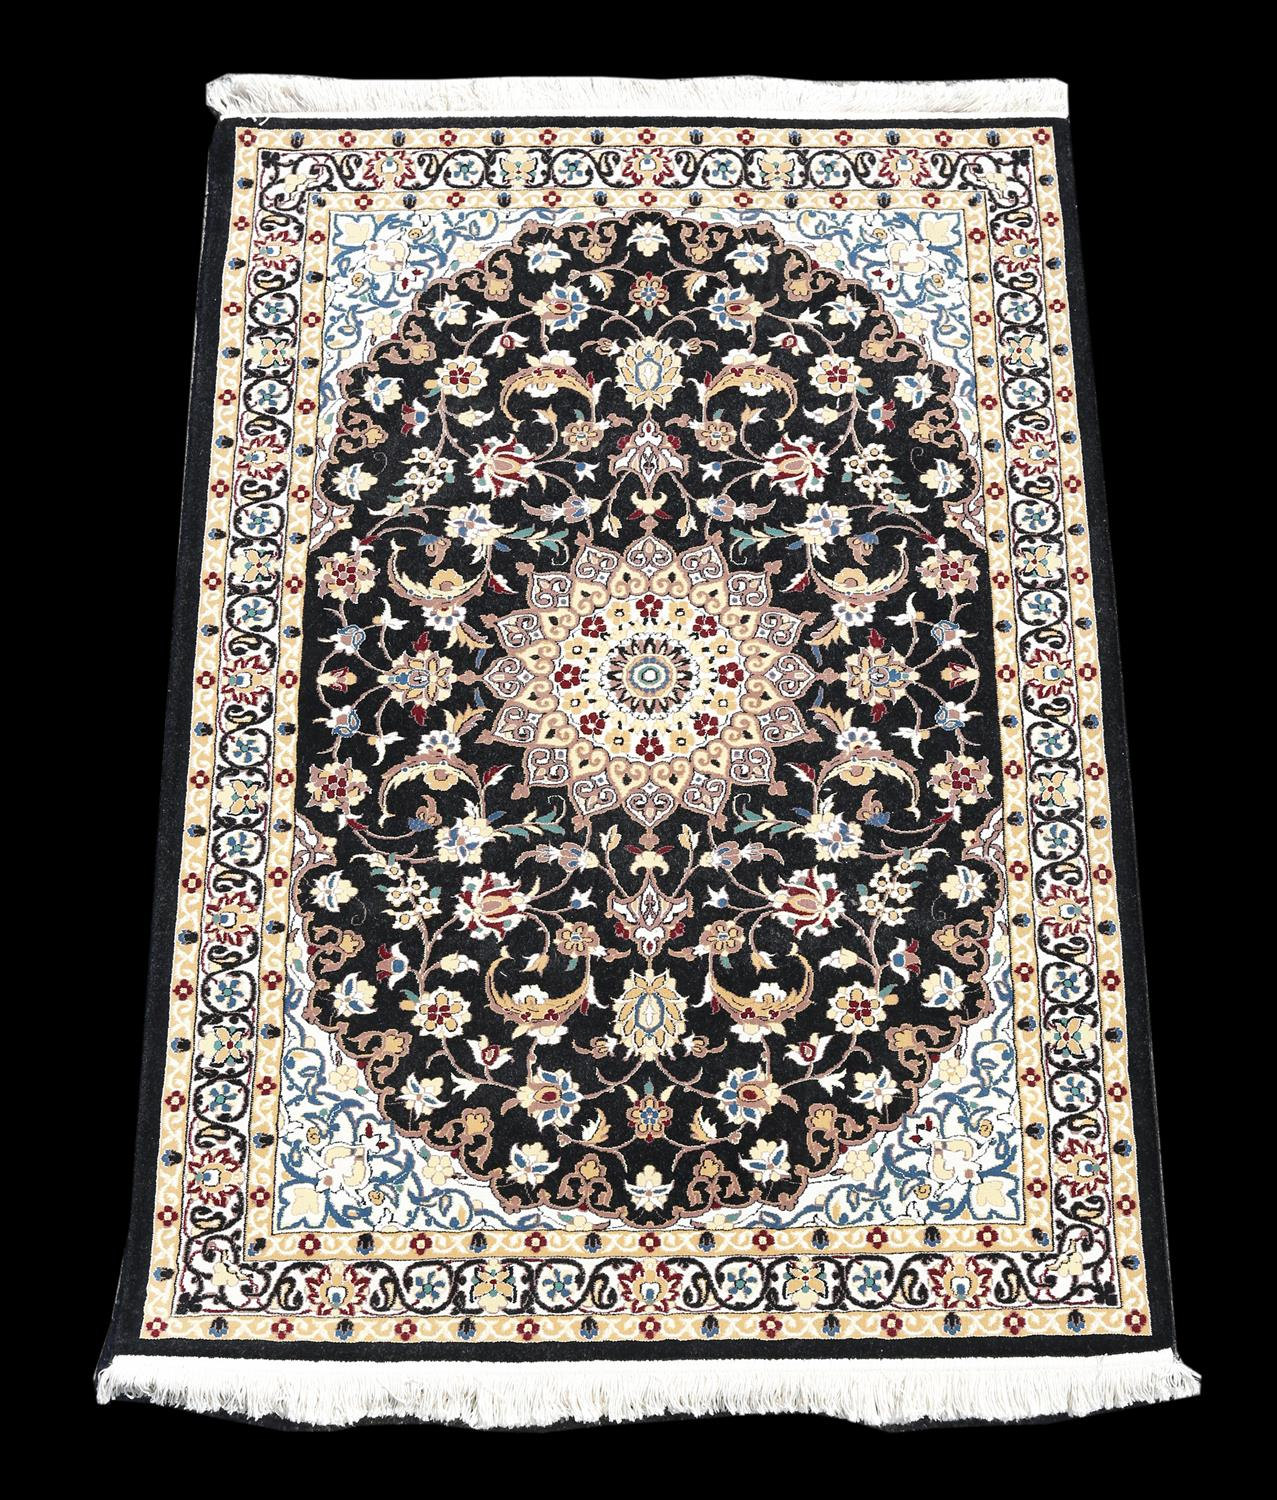 Persian style full pile rug, with central medallion and scrolling floral design on a black ground